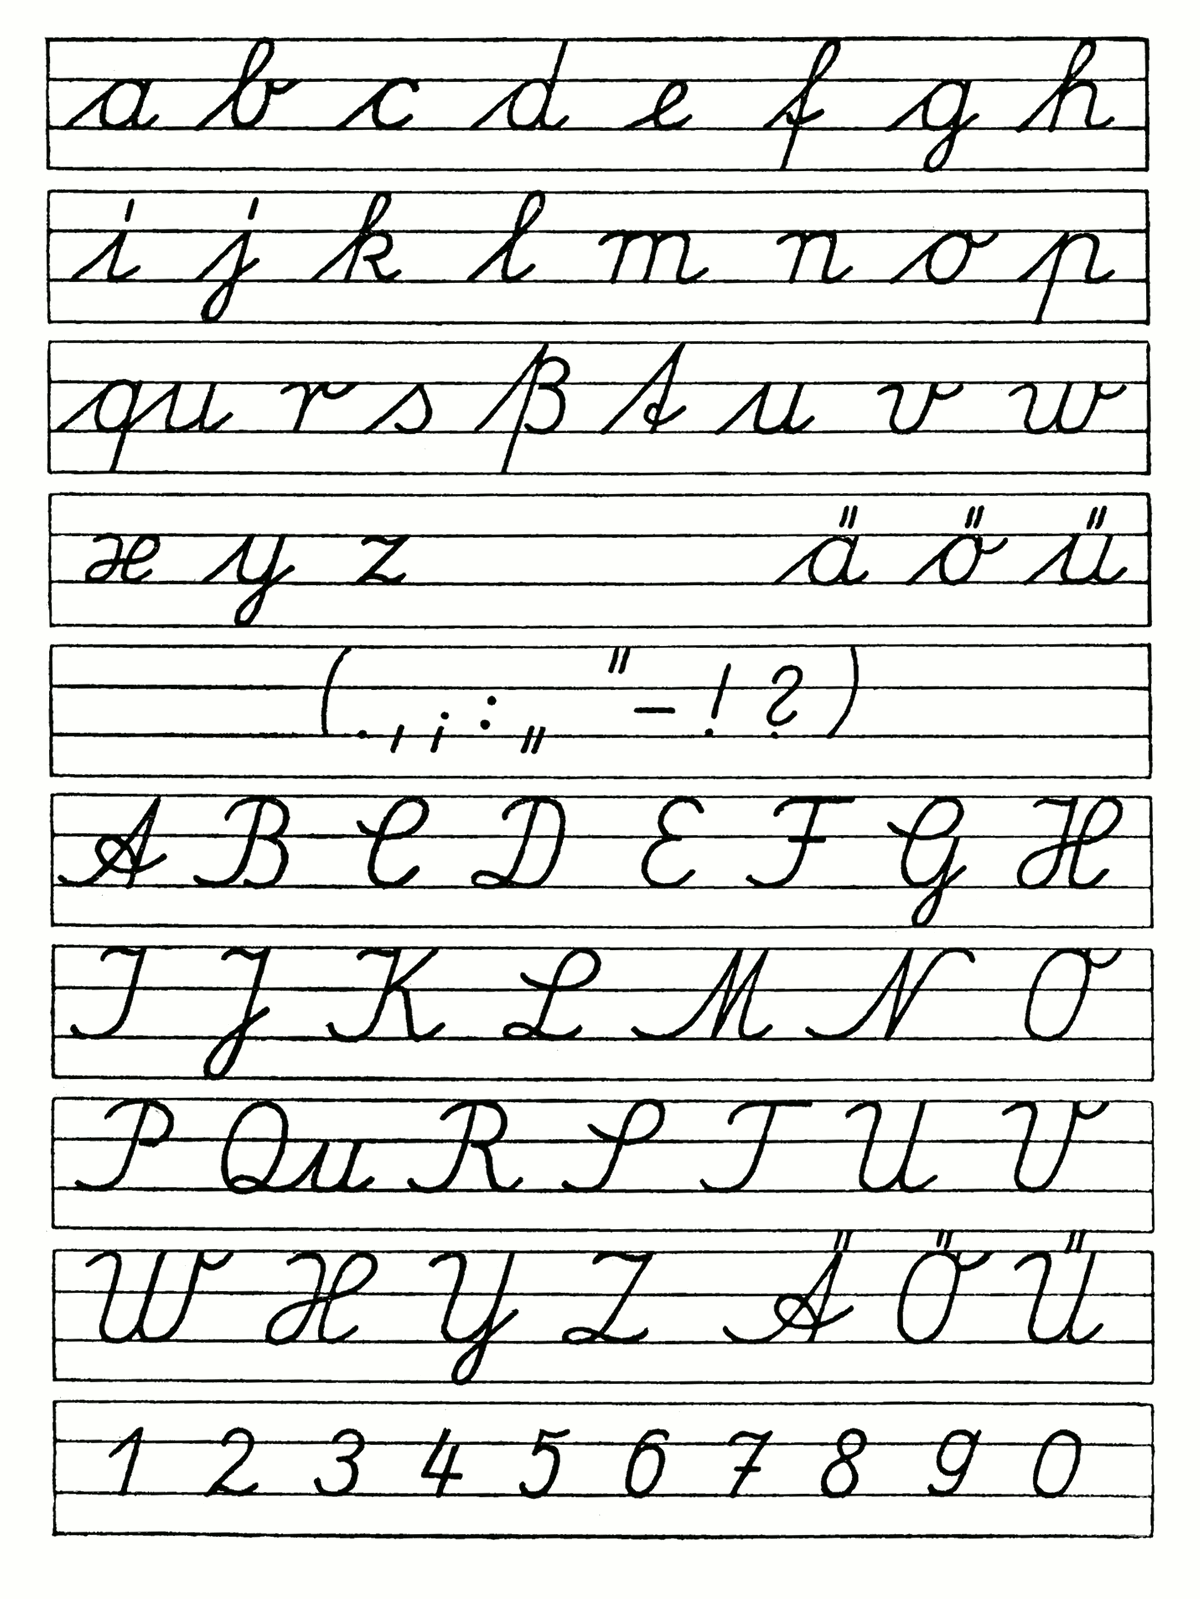 Worksheet Alphabet In Cursive Handwriting 17 best images about handwriting on pinterest alphabet cursive and lettering